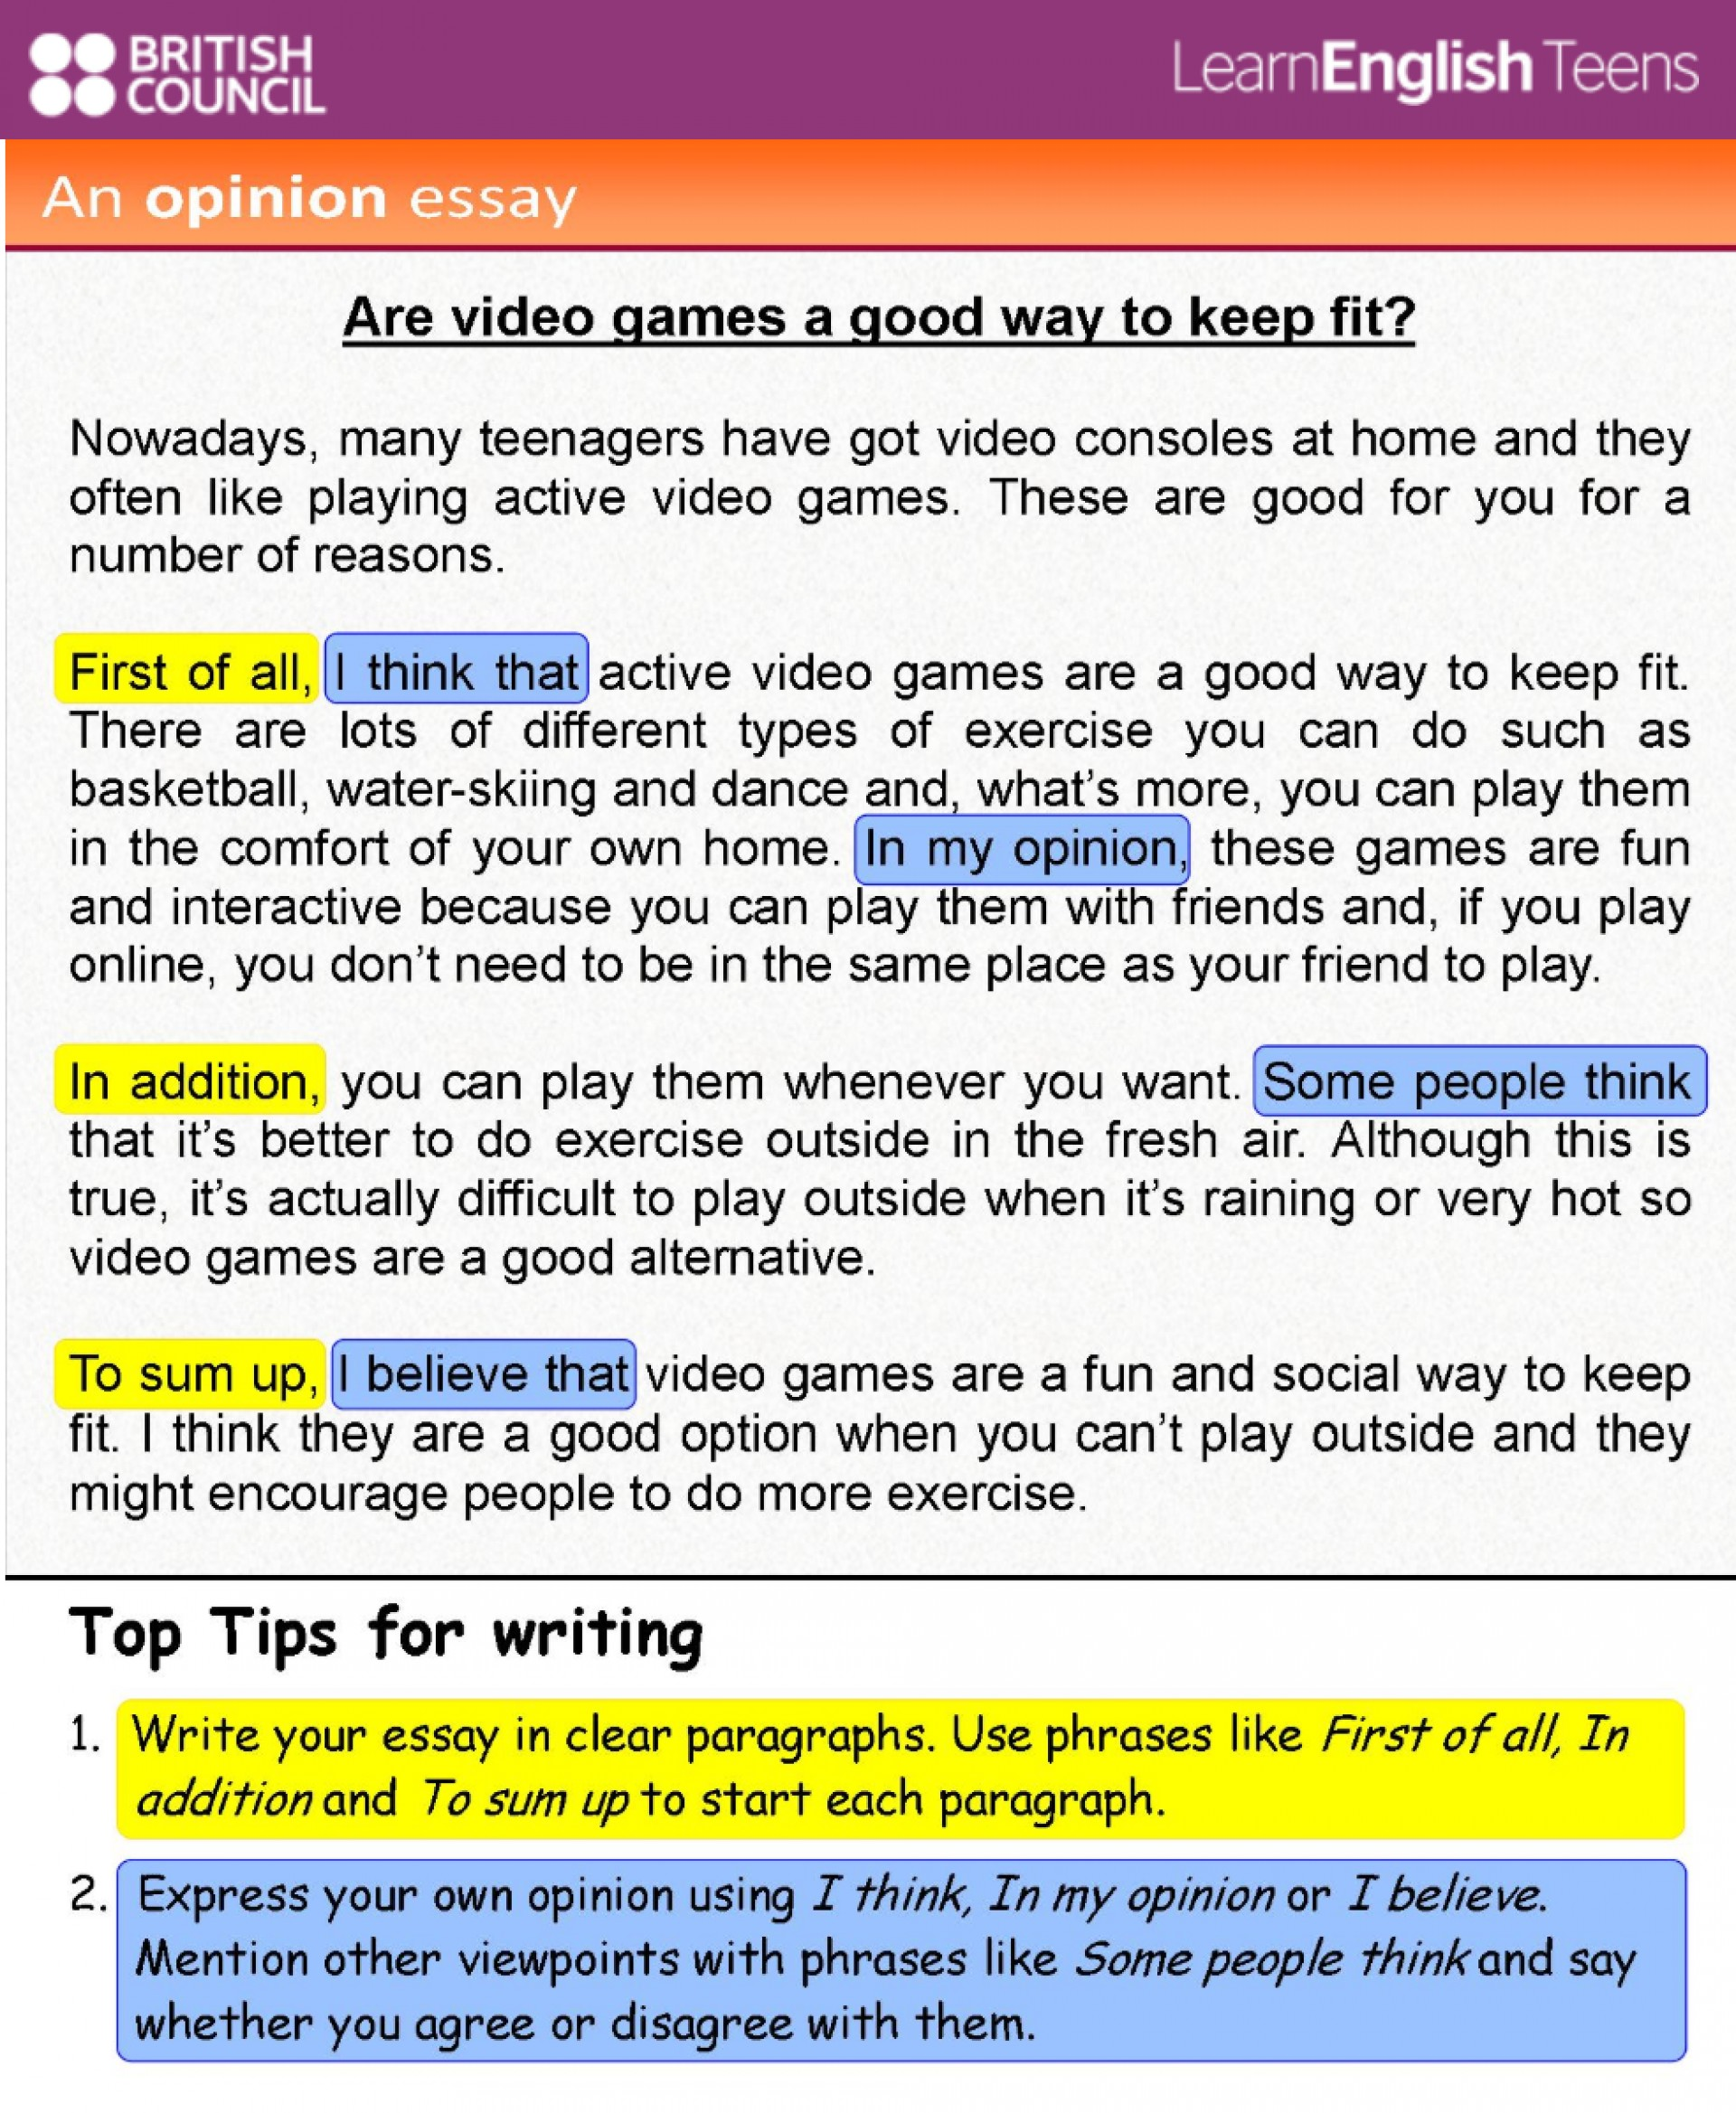 020 Essay Example 44311473 1816952158359937 8446032756424572928 Ow1400 Magnificent Opinion Prompts 6th Grade Examples 3rd 1920